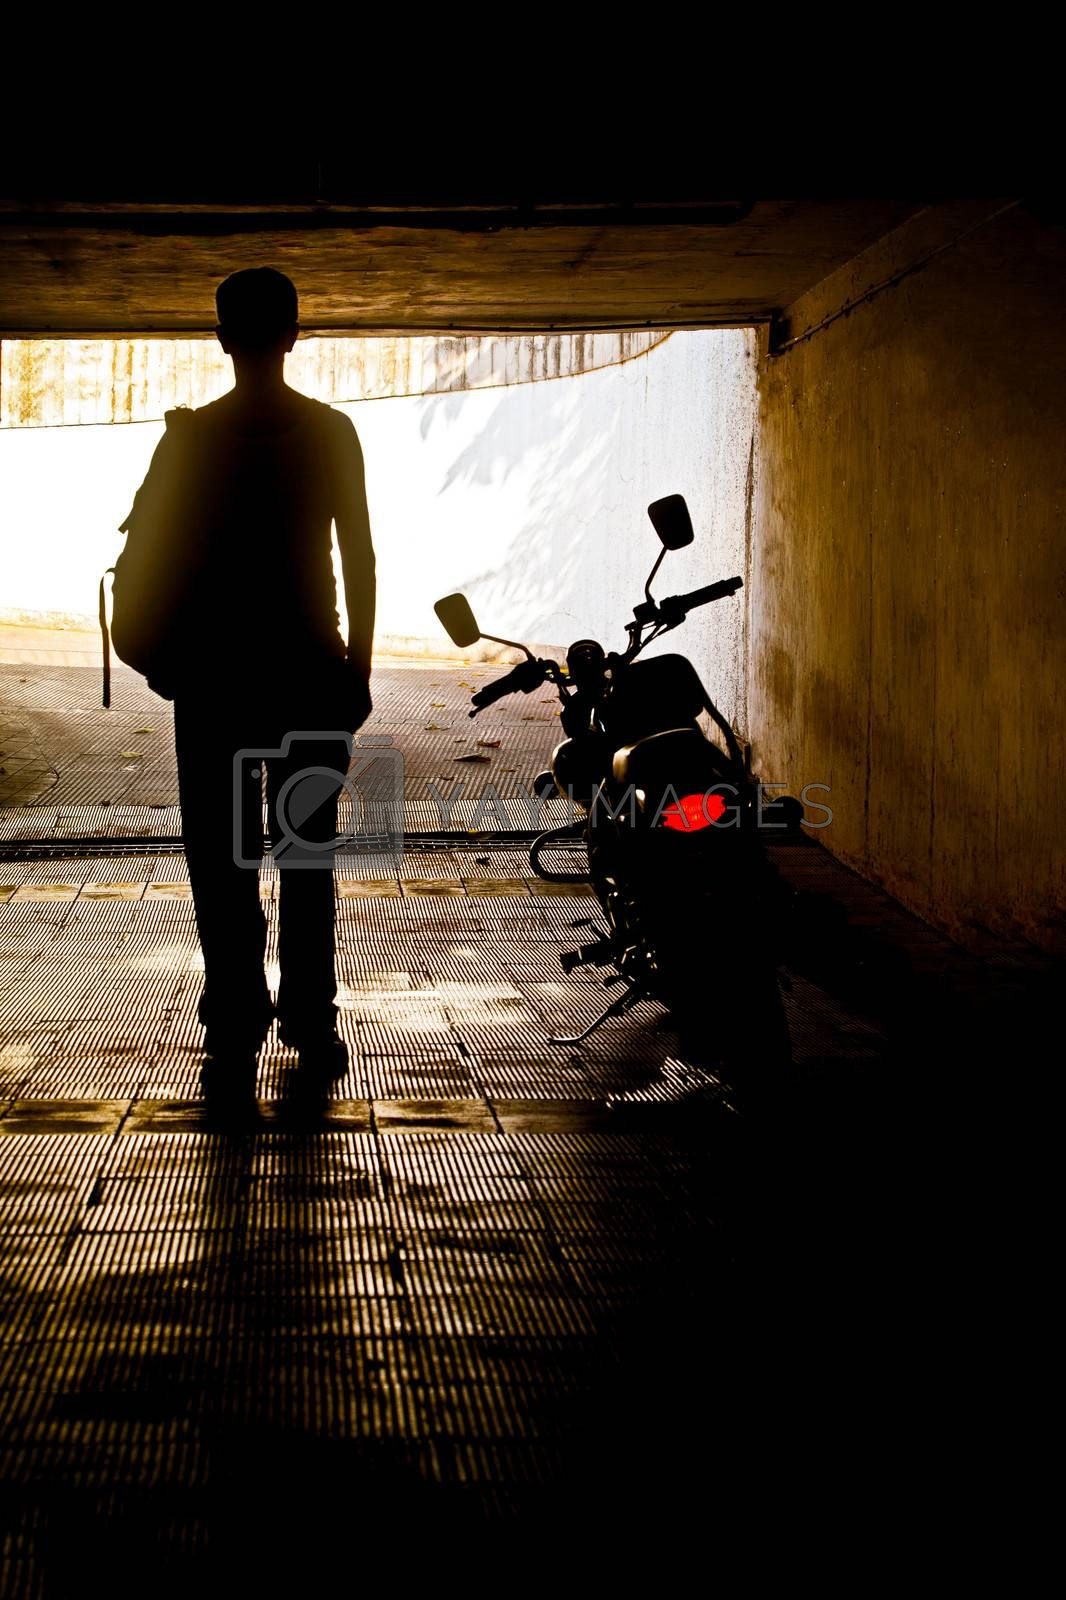 Vertical silhouette concept capture of a man in a vest with ruck sack back pack near his motorcycle which has its tail slights switched on in a tunnel